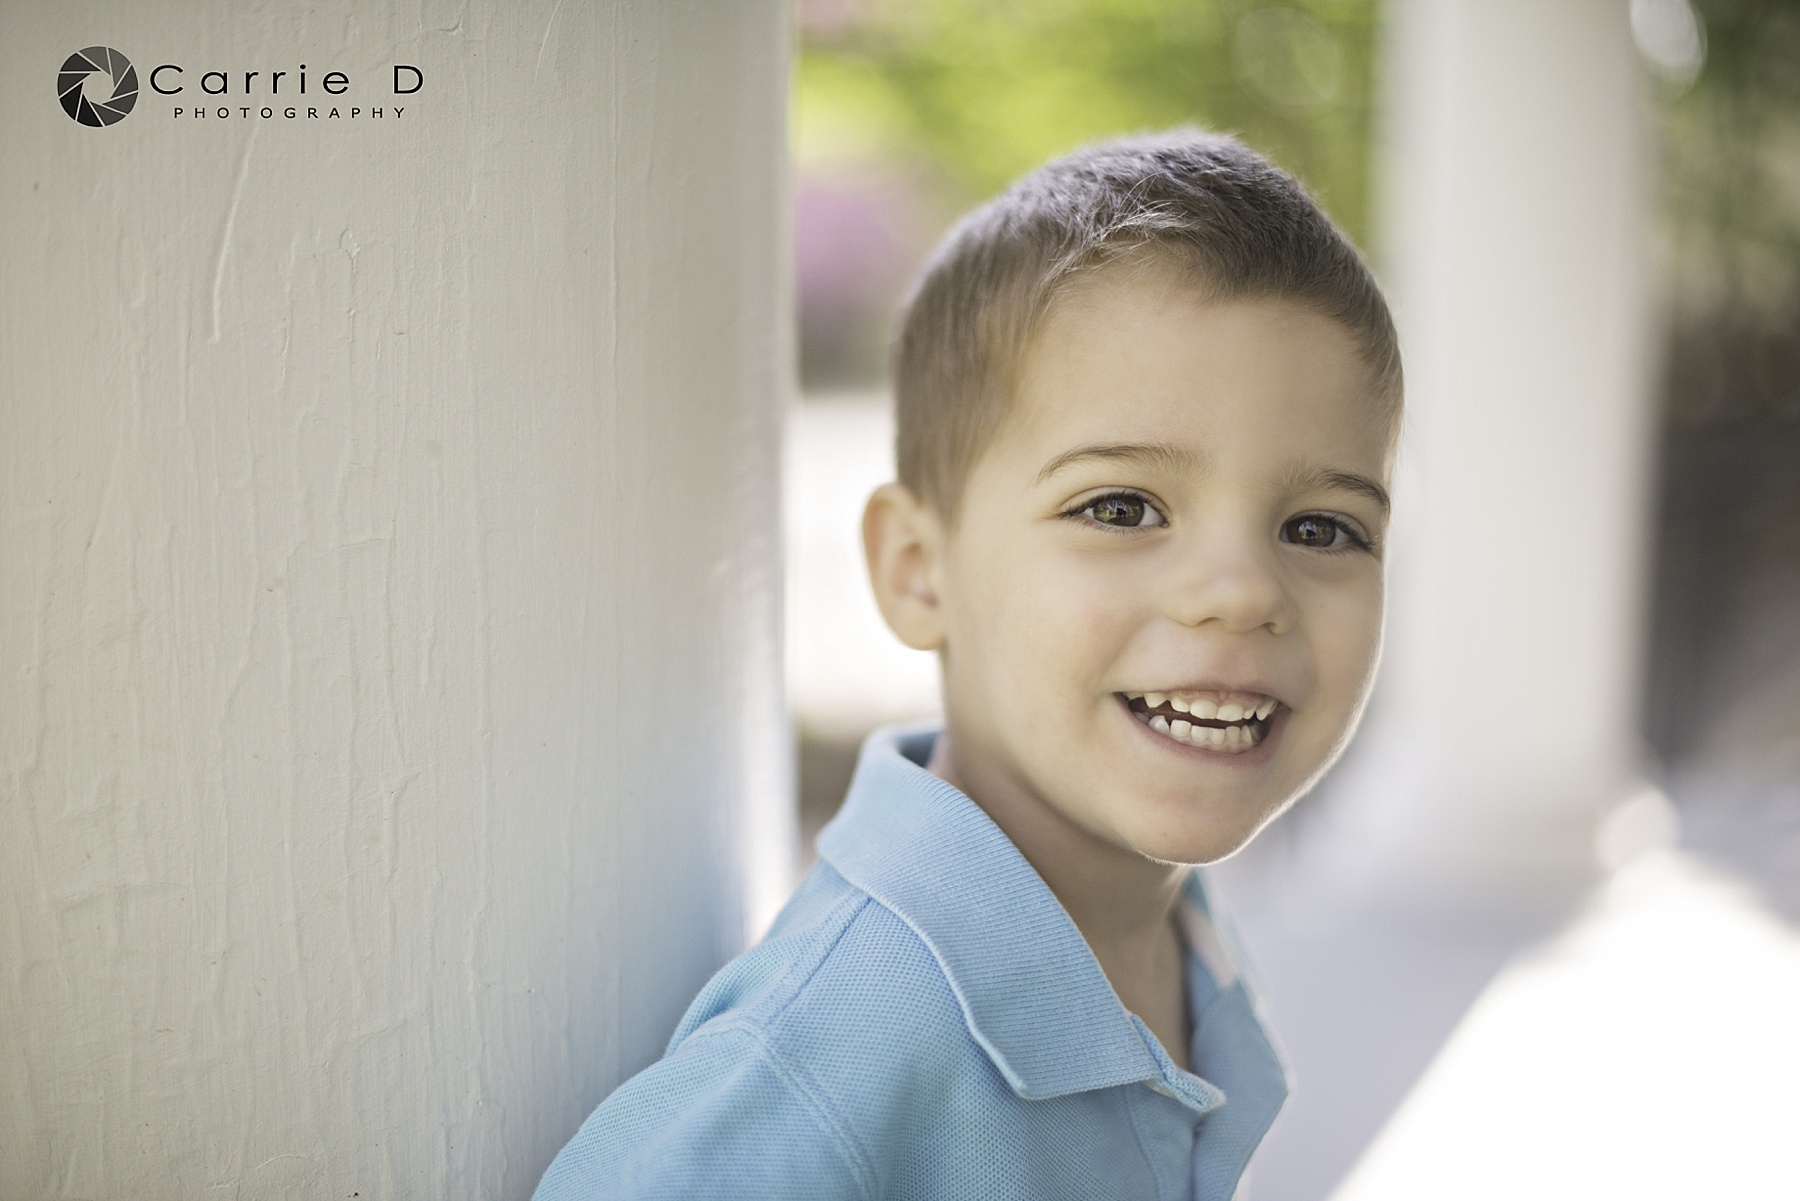 Harford County Photographer – Harford County Portrait Photographer – Harford County Family Photographer – Harford County Child Photographer – Harford County Sibling Photographer – Harford County Natural Light Photographer – Harford County Lifestyle Photographer – Harford County Natural Light Portrait Photographer - Maryland Photographer – Maryland Portrait Photographer – Maryland Family Photographer – Maryland Child Photographer – Maryland Sibling Photographer – Maryland Natural Light Photographer – Maryland Lifestyle Photographer – Maryland Natural Light Portrait Photographer - 2014-05-17_0003